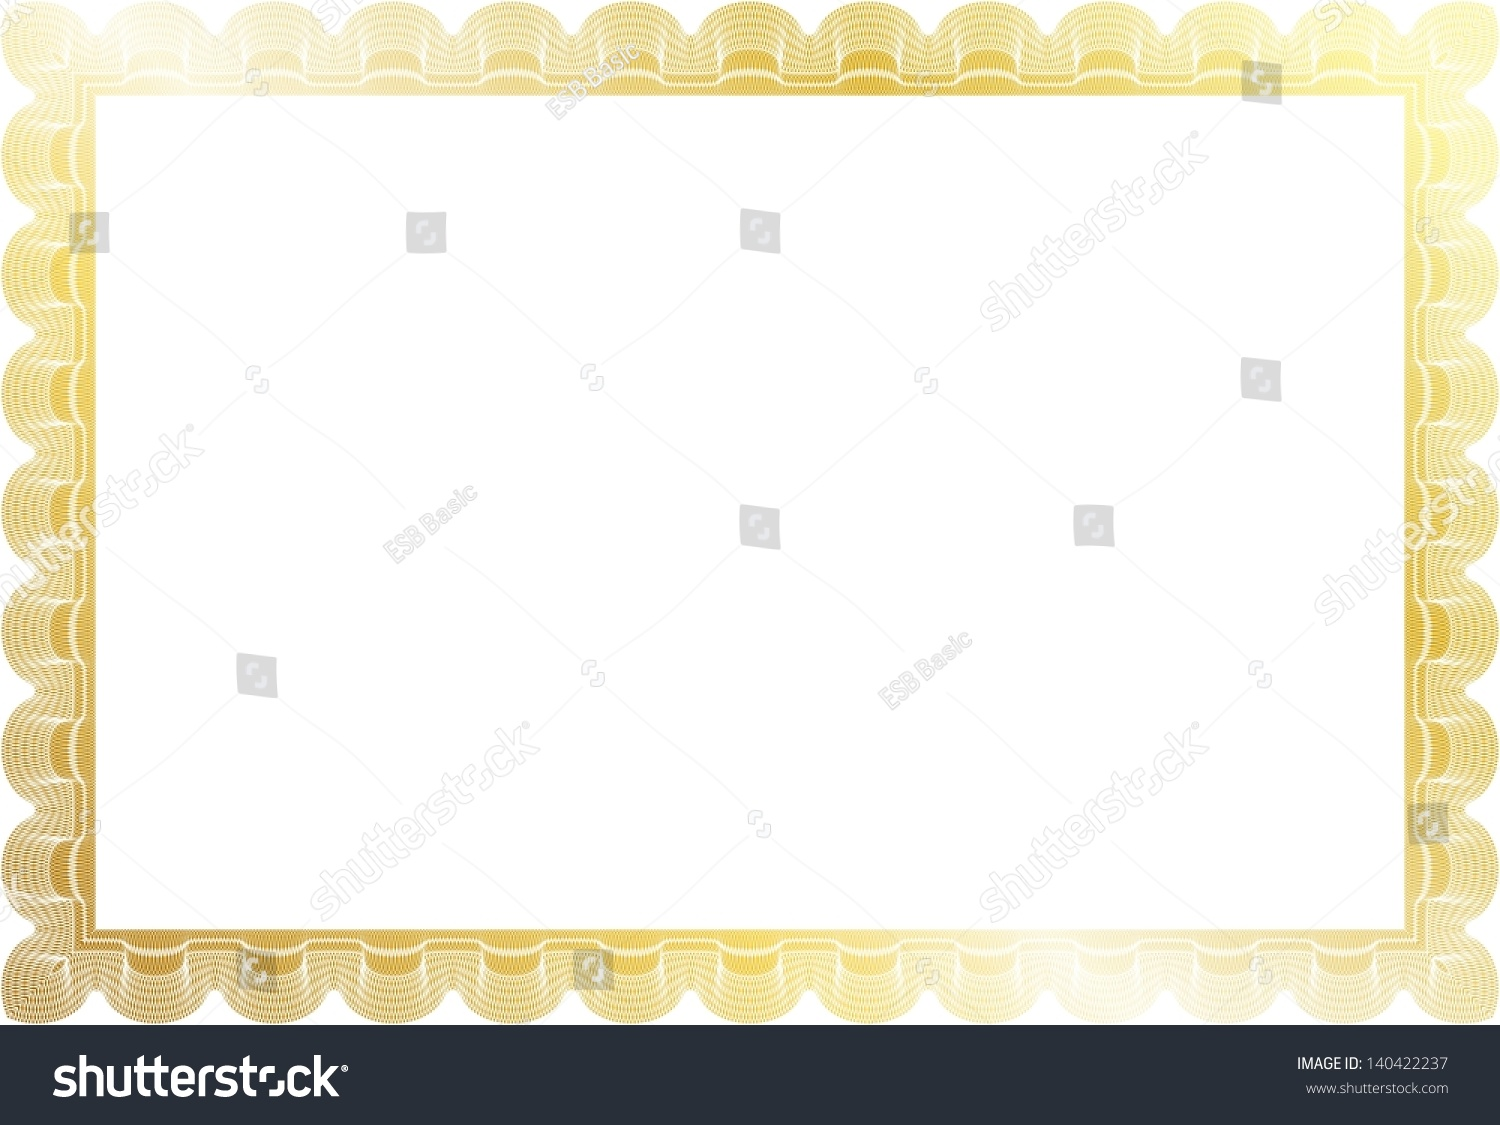 gold border certificate diploma coupon complex stock vector  gold border for certificate diploma or coupon complex design